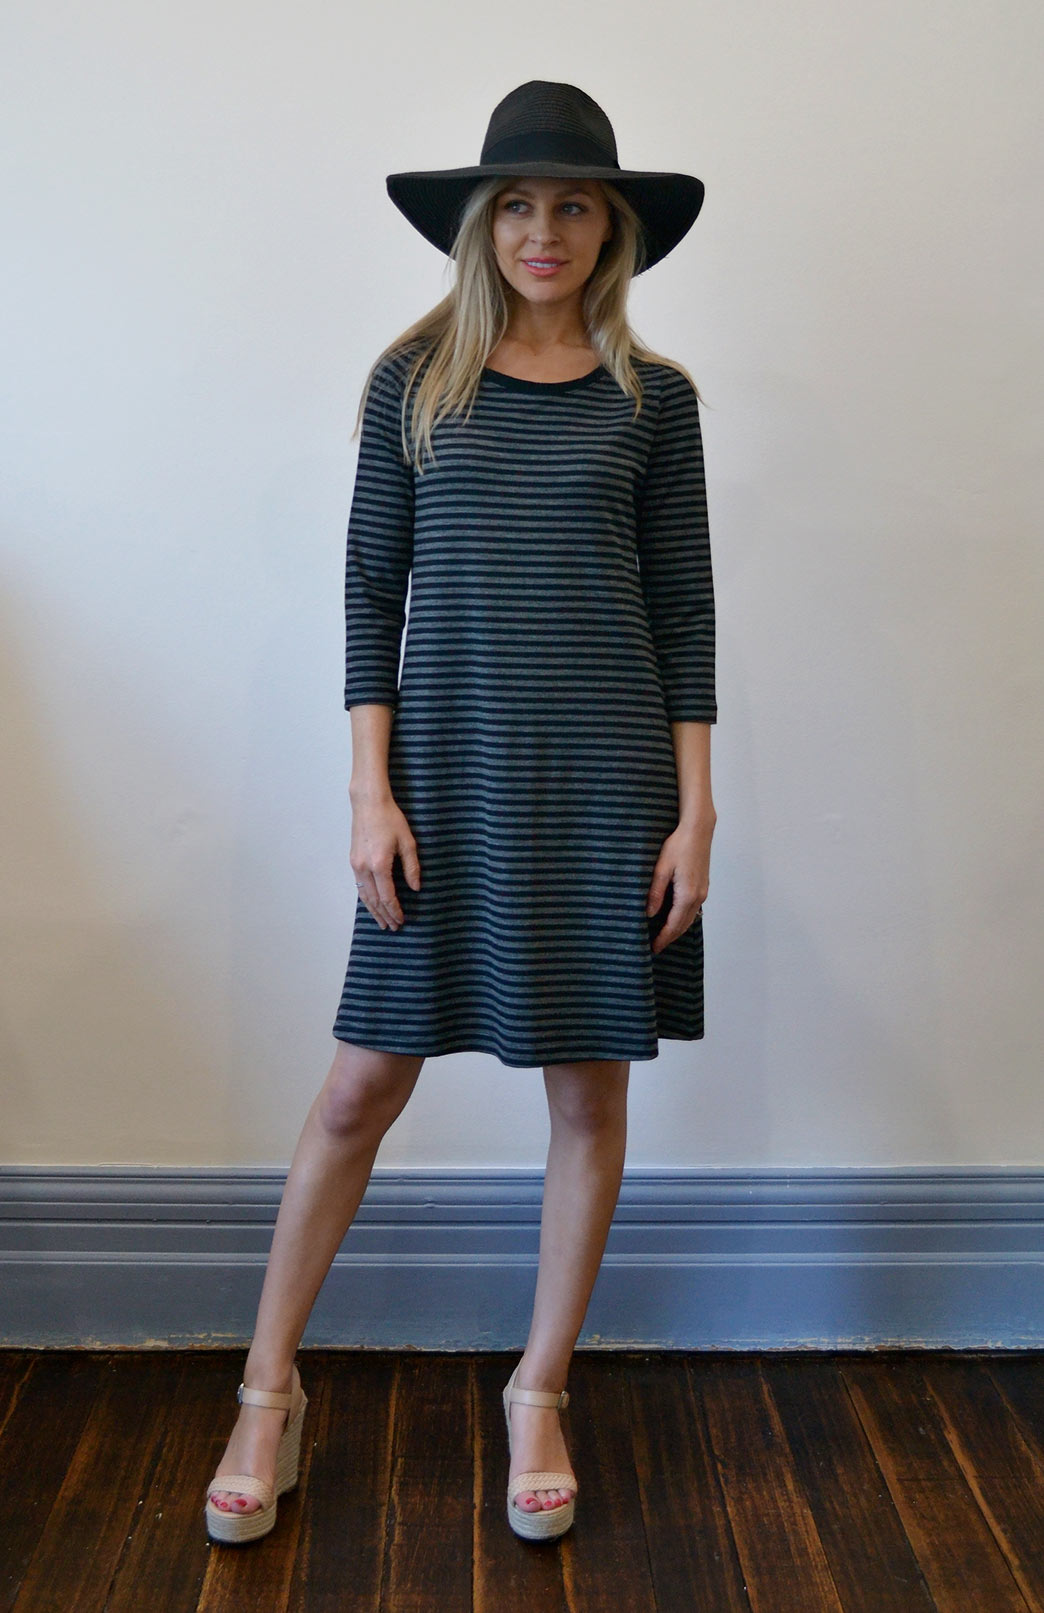 Ellie Swing Dress - Women's Black and Grey Superfine Merino Wool Swing Dress with sleeves and pockets - Smitten Merino Tasmania Australia